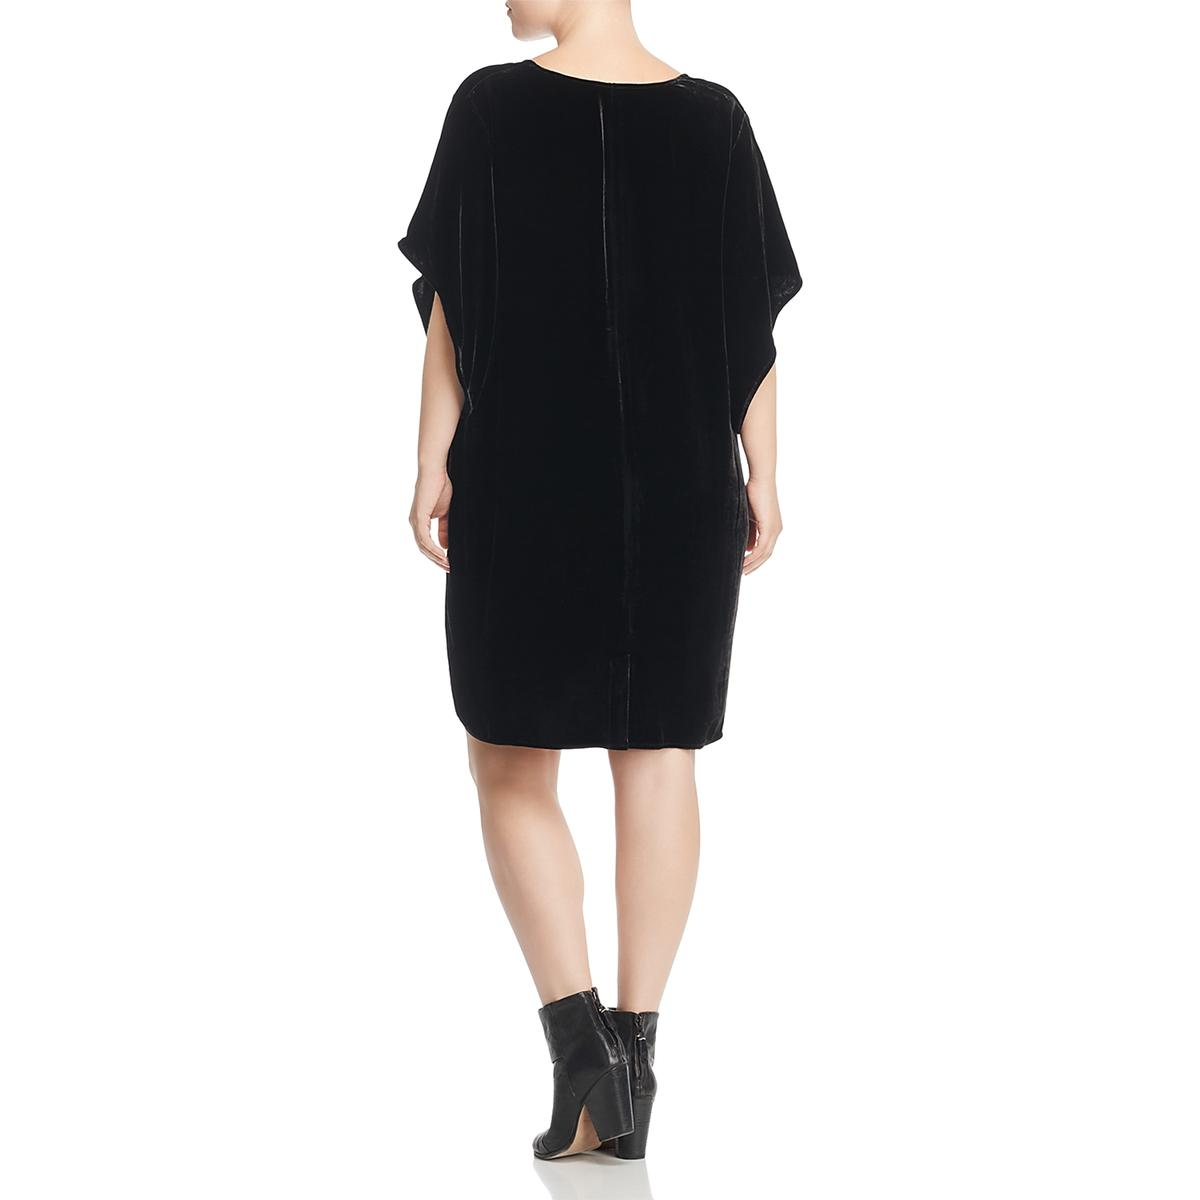 5642f0ec47a Details about Eileen Fisher Womens Black Velvet V-Neck Party Cocktail Dress  Plus 1X BHFO 7843